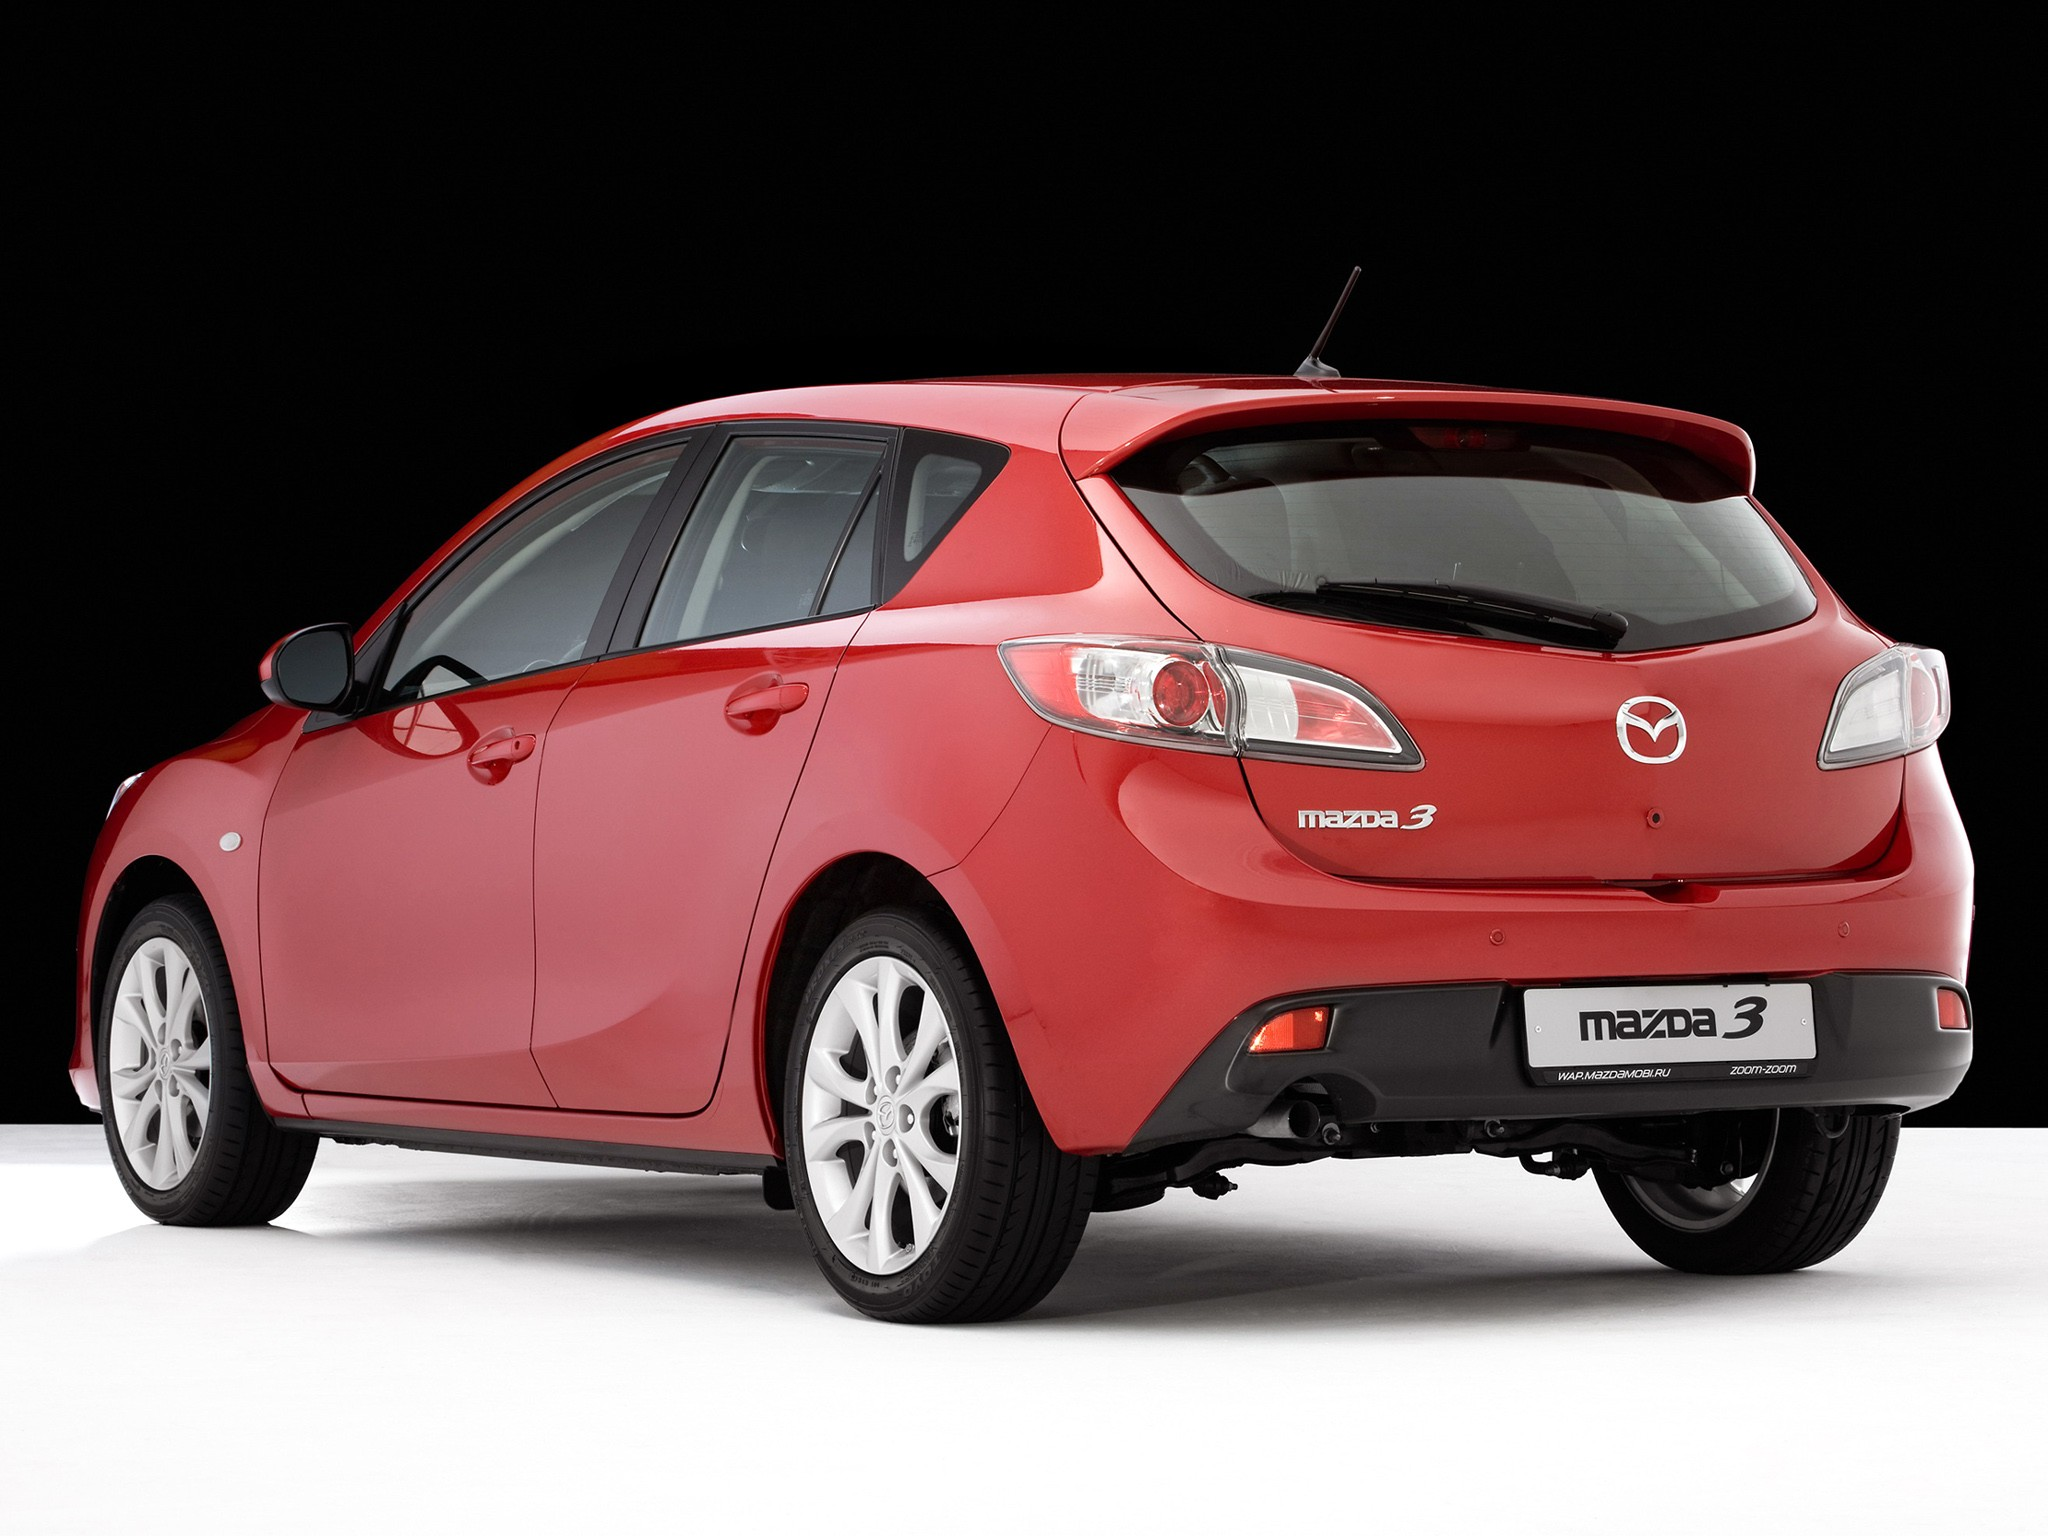 mazda 3 axela hatchback specs 2009 2010 2011 2012 2013 autoevolution. Black Bedroom Furniture Sets. Home Design Ideas